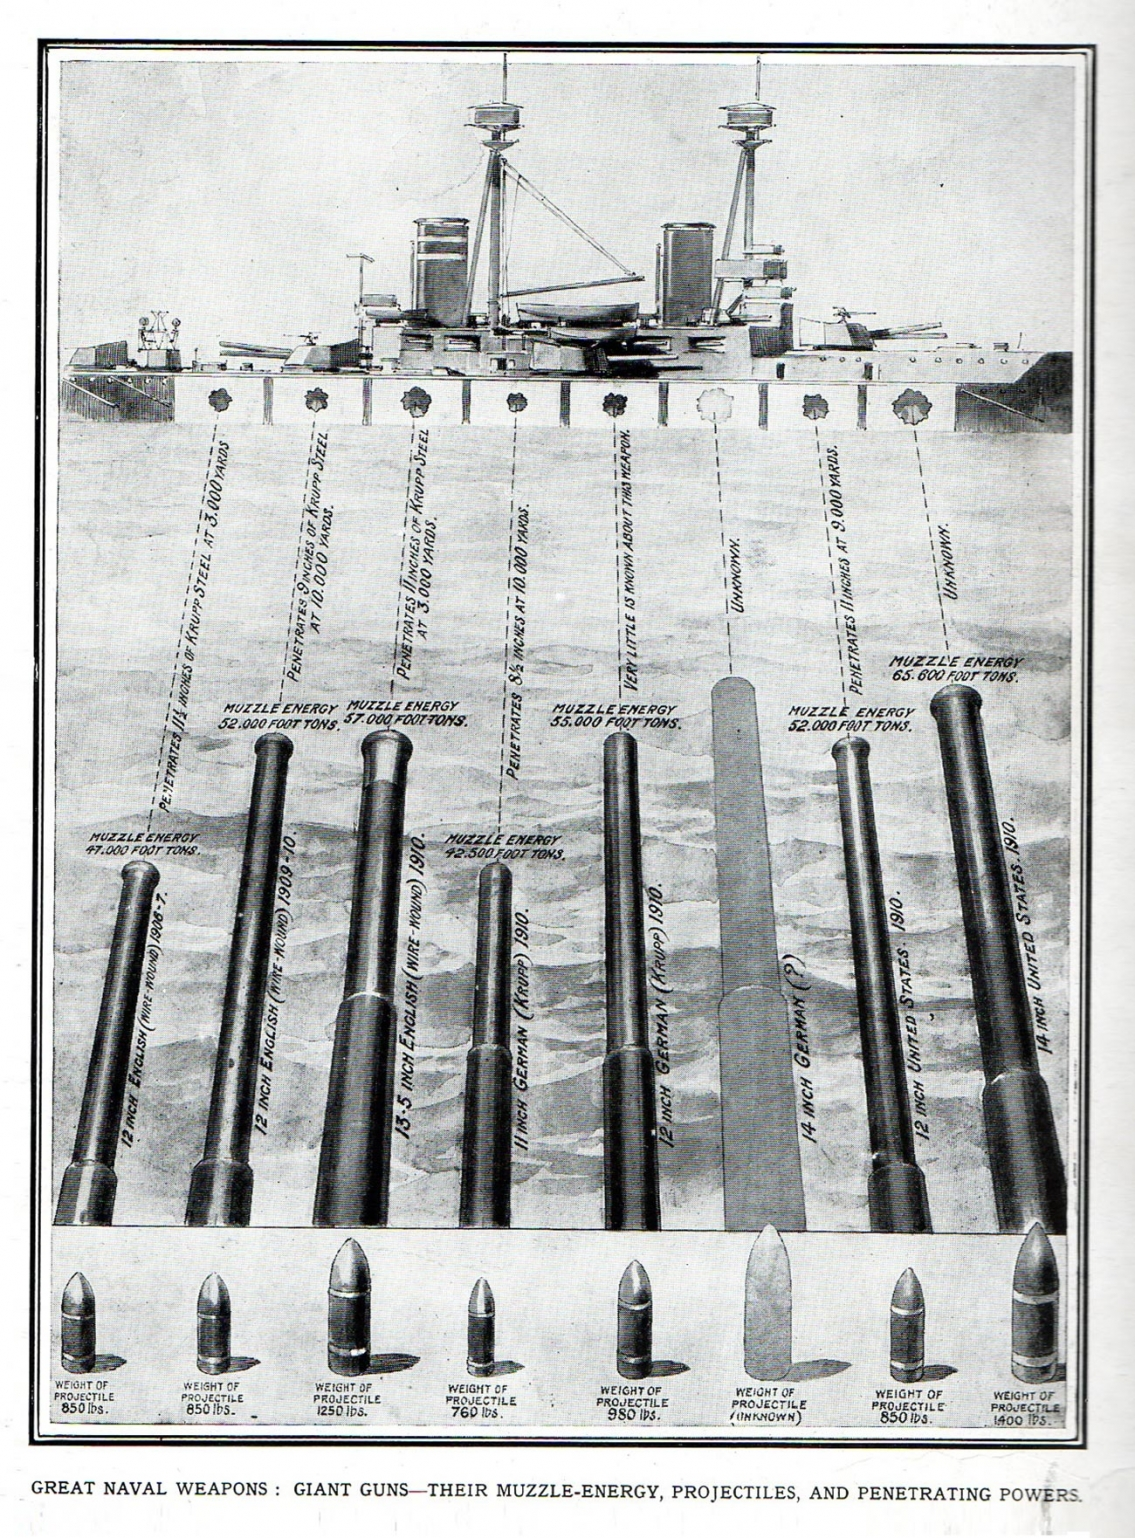 Great Naval Weapons - Giant Guns 1910 - Vintage Infographic